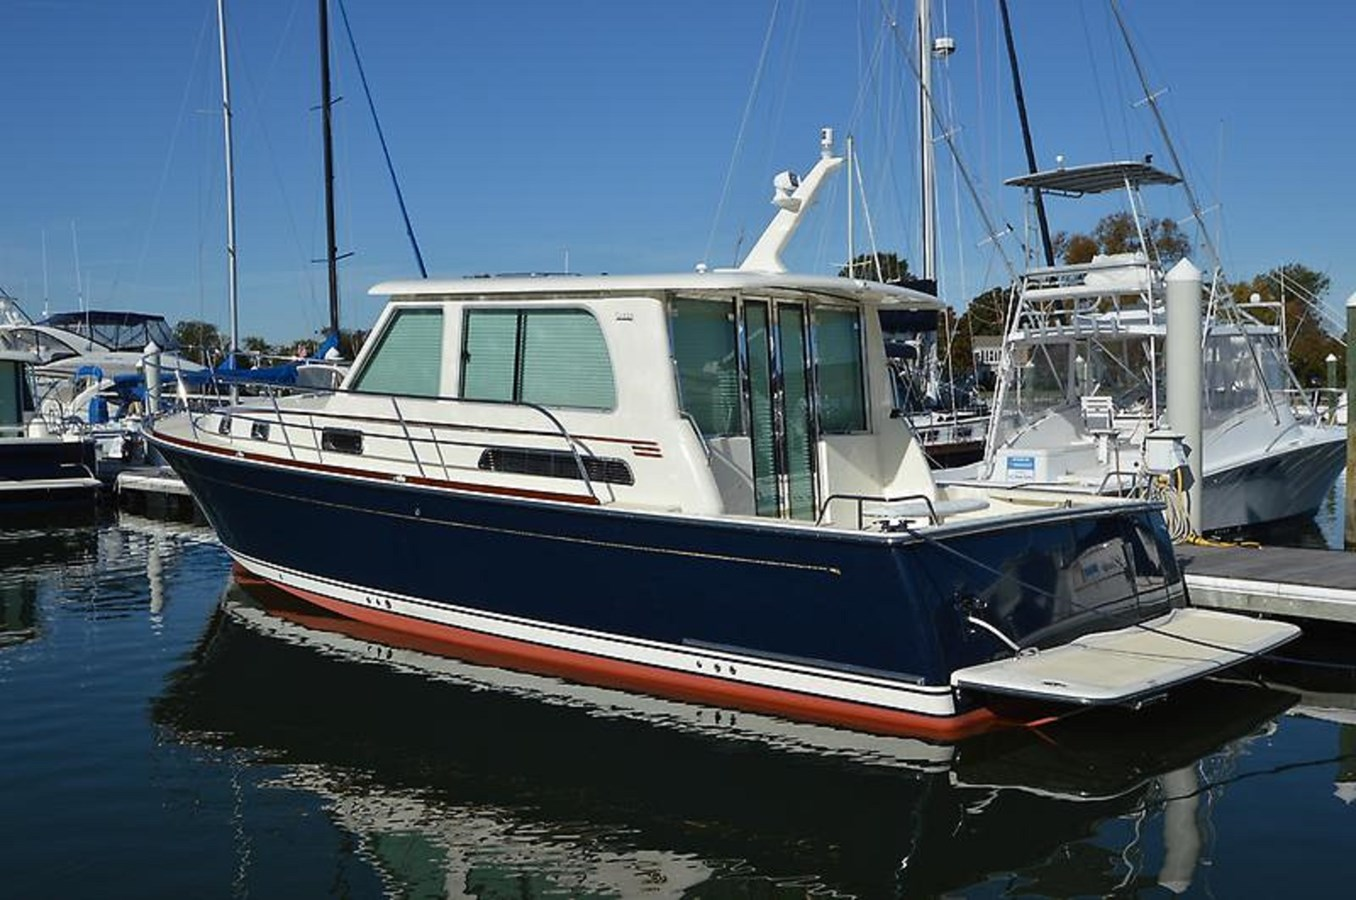 2017 42 Salon Express Sabre - 42 SABRE YACHTS For Sale